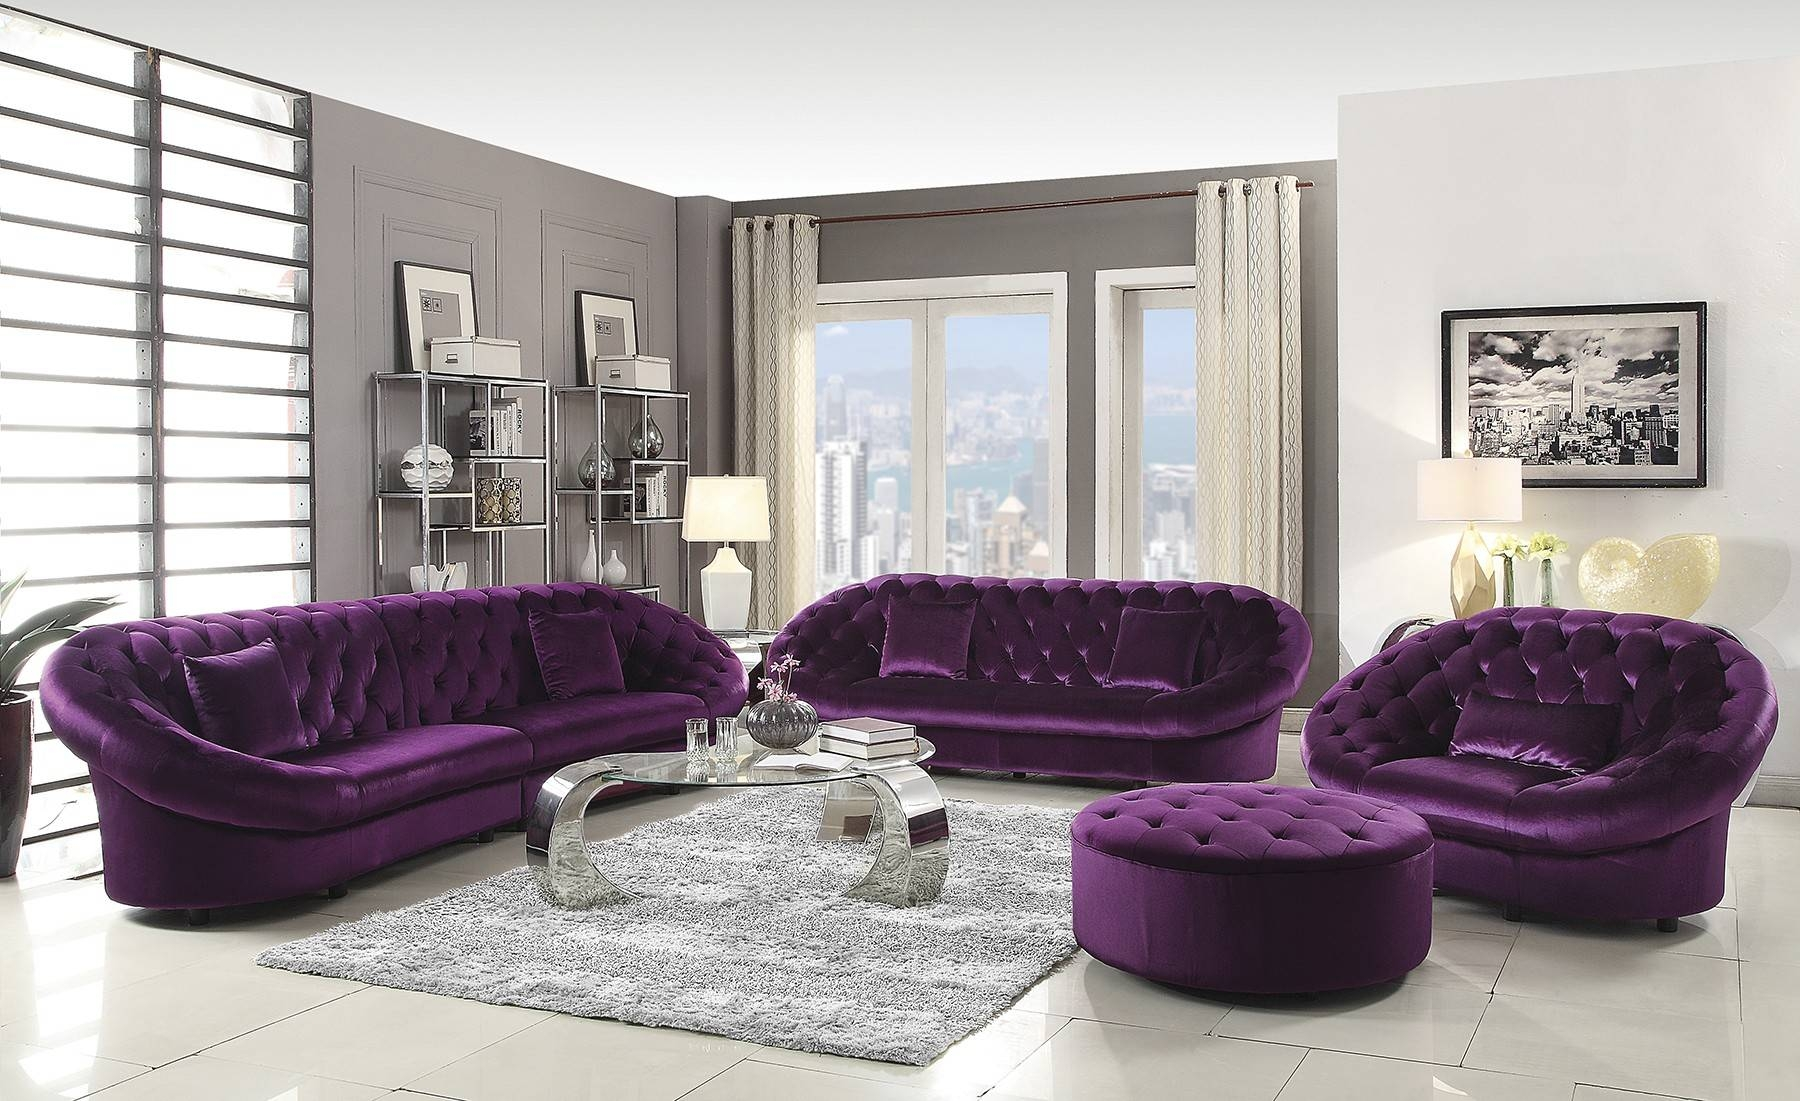 Sofas Center : Alan White Sofa And Purple Loveseatt Darkctional inside Eggplant Sectional Sofa (Image 20 of 30)